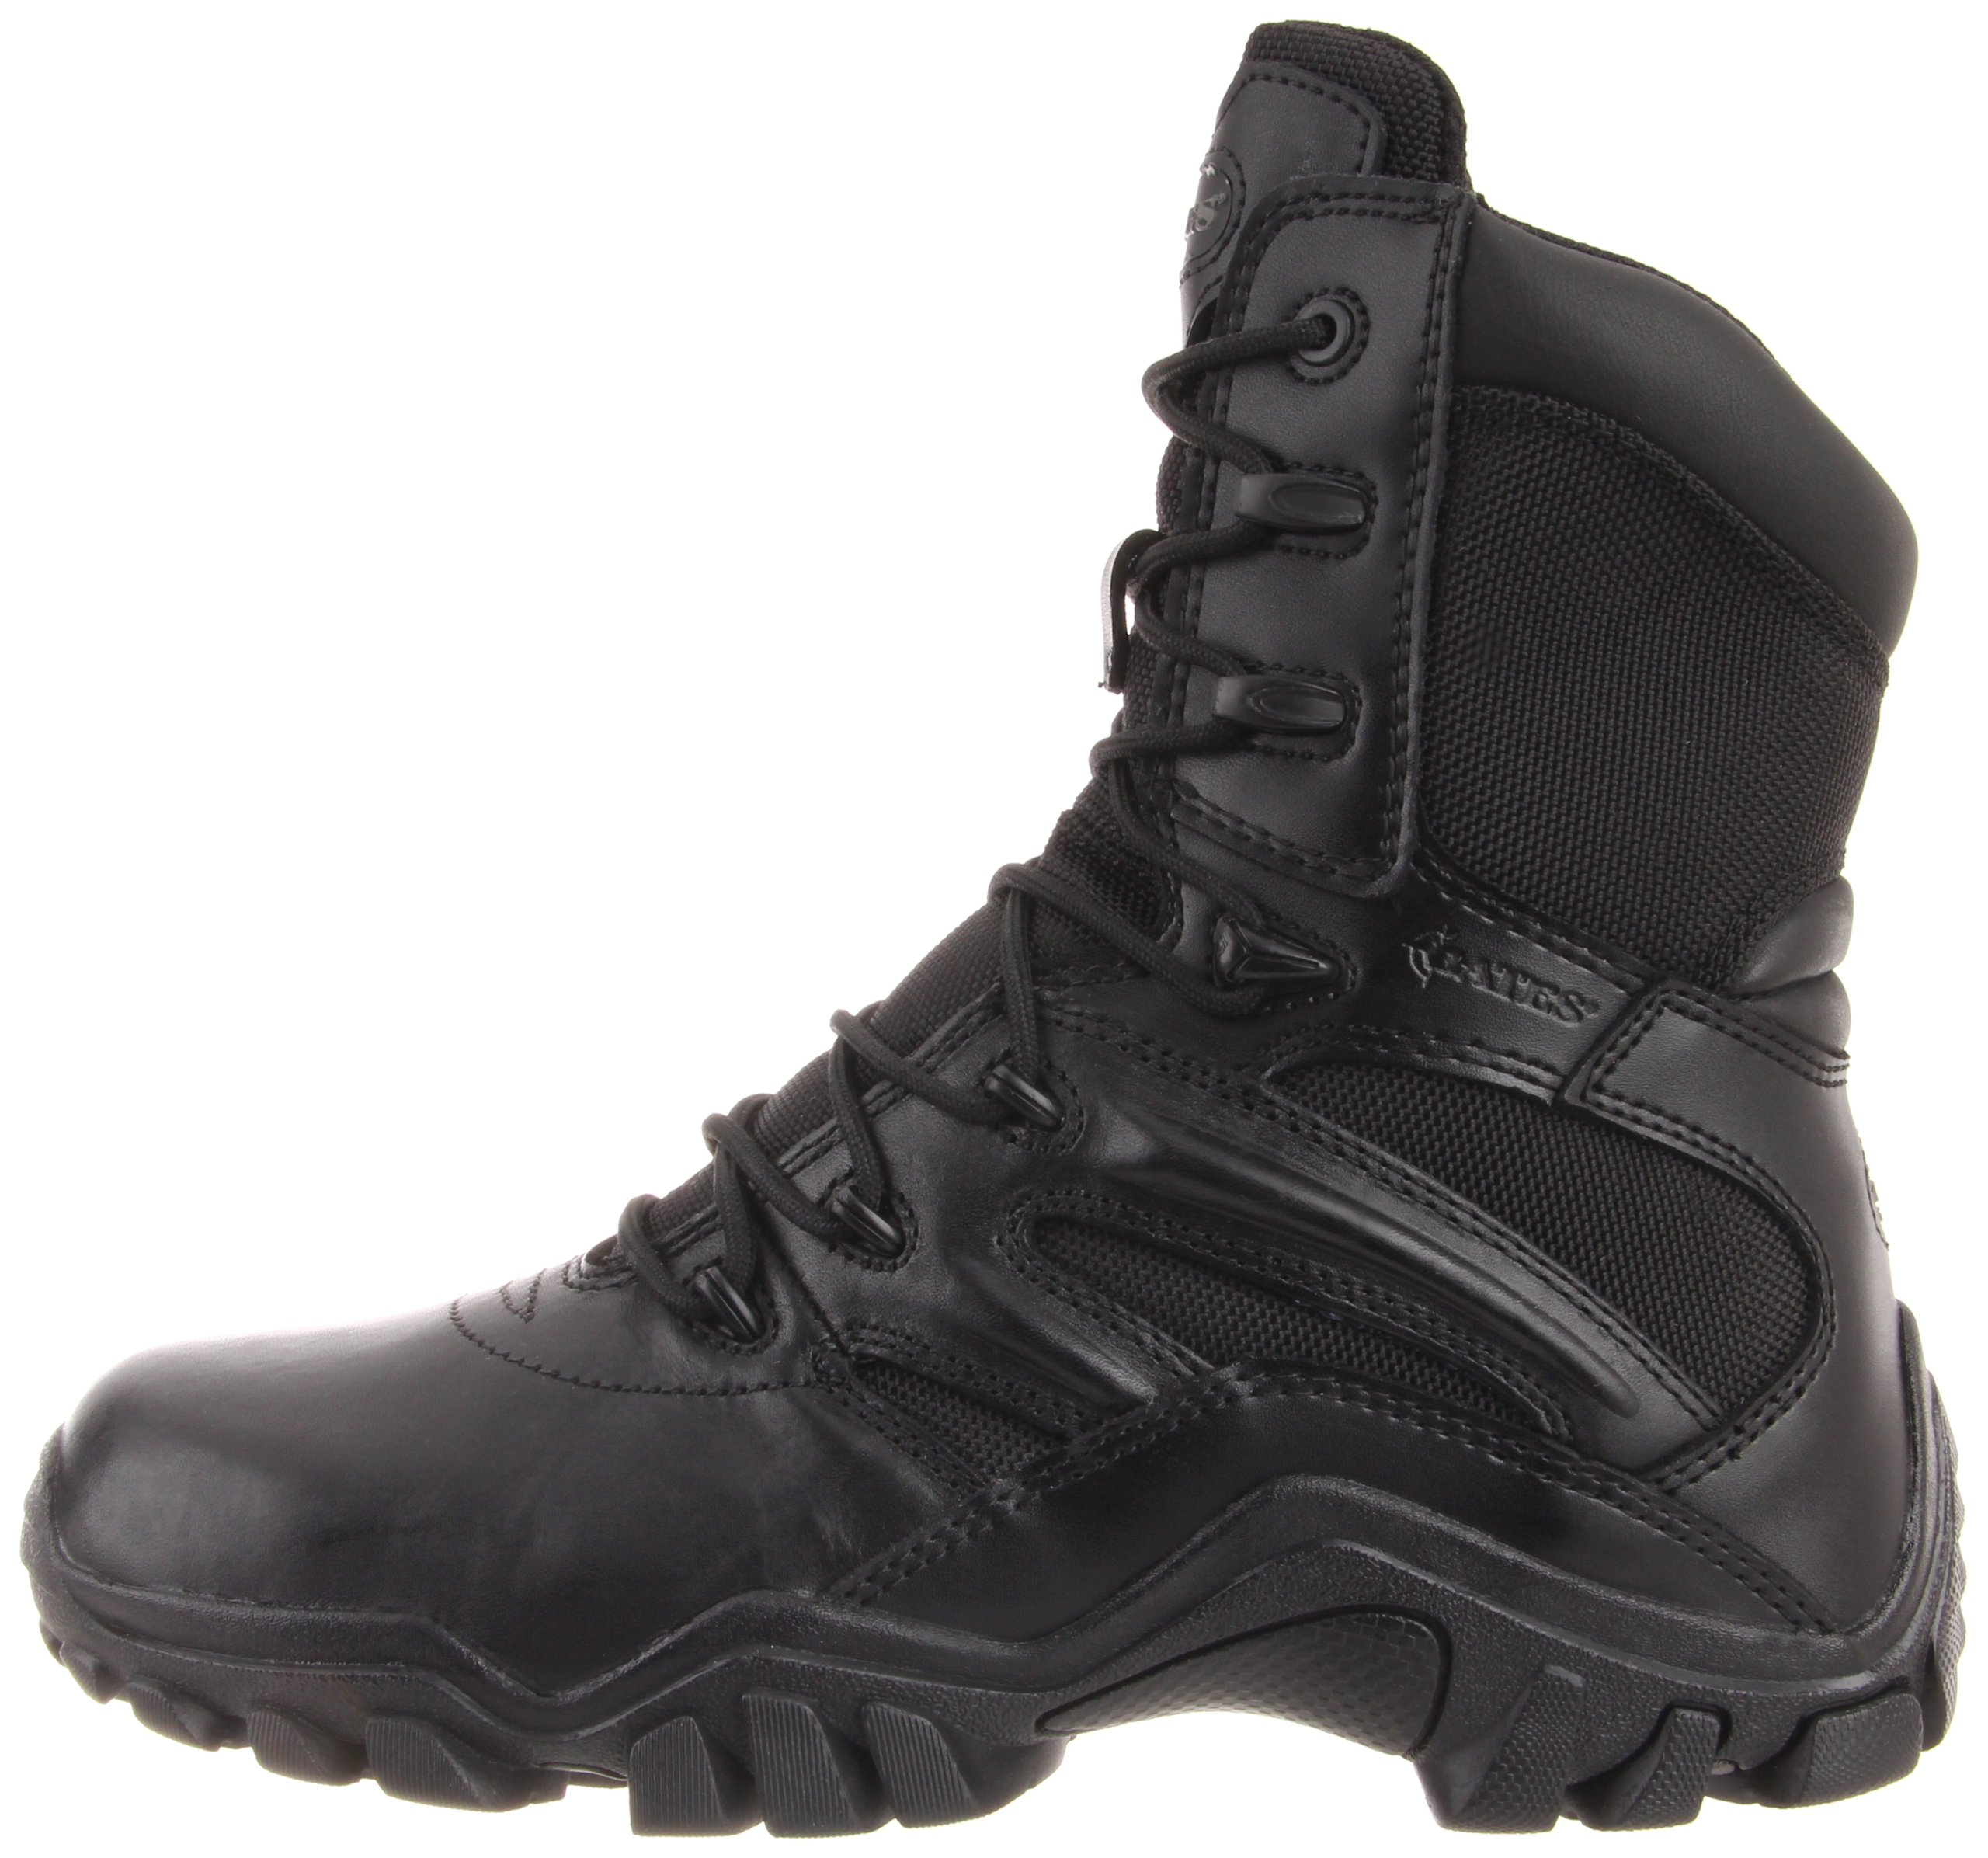 Bates Women's Delta 8 Inch Boot, Black, 8 M US by Bates (Image #5)